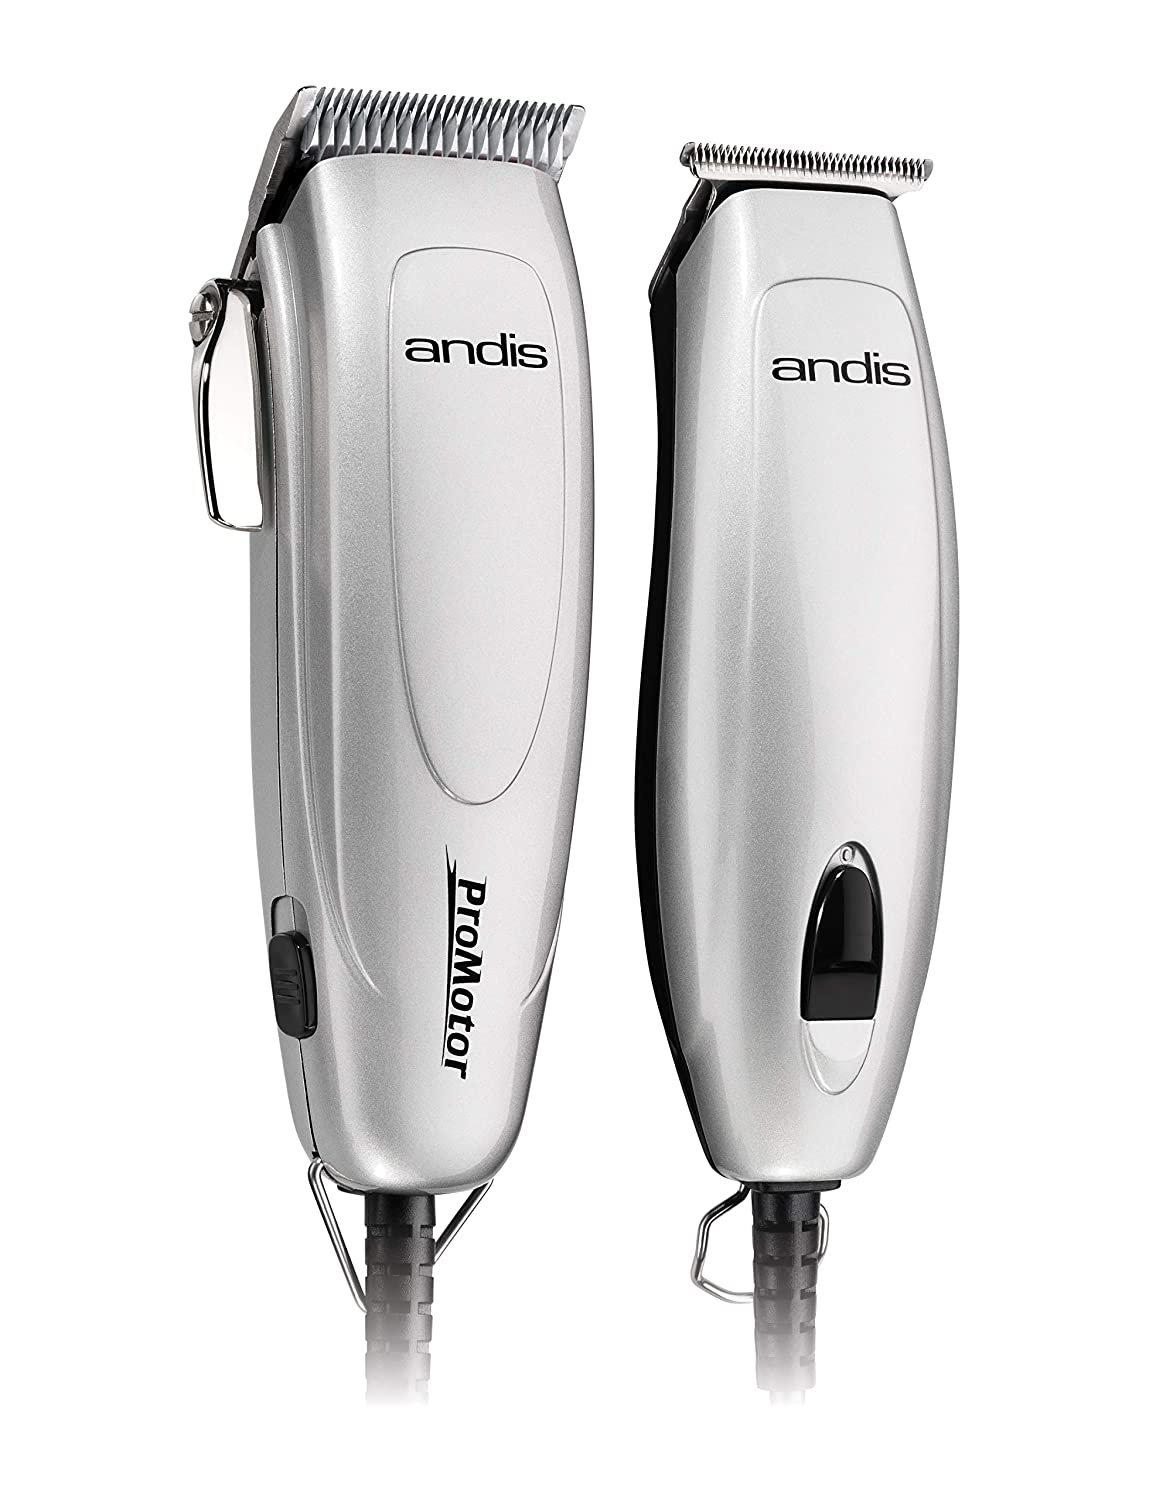 Andis 24565 Promotor + Combo Finally resale start price Clipper Trimmer Haircuttin Piece 27